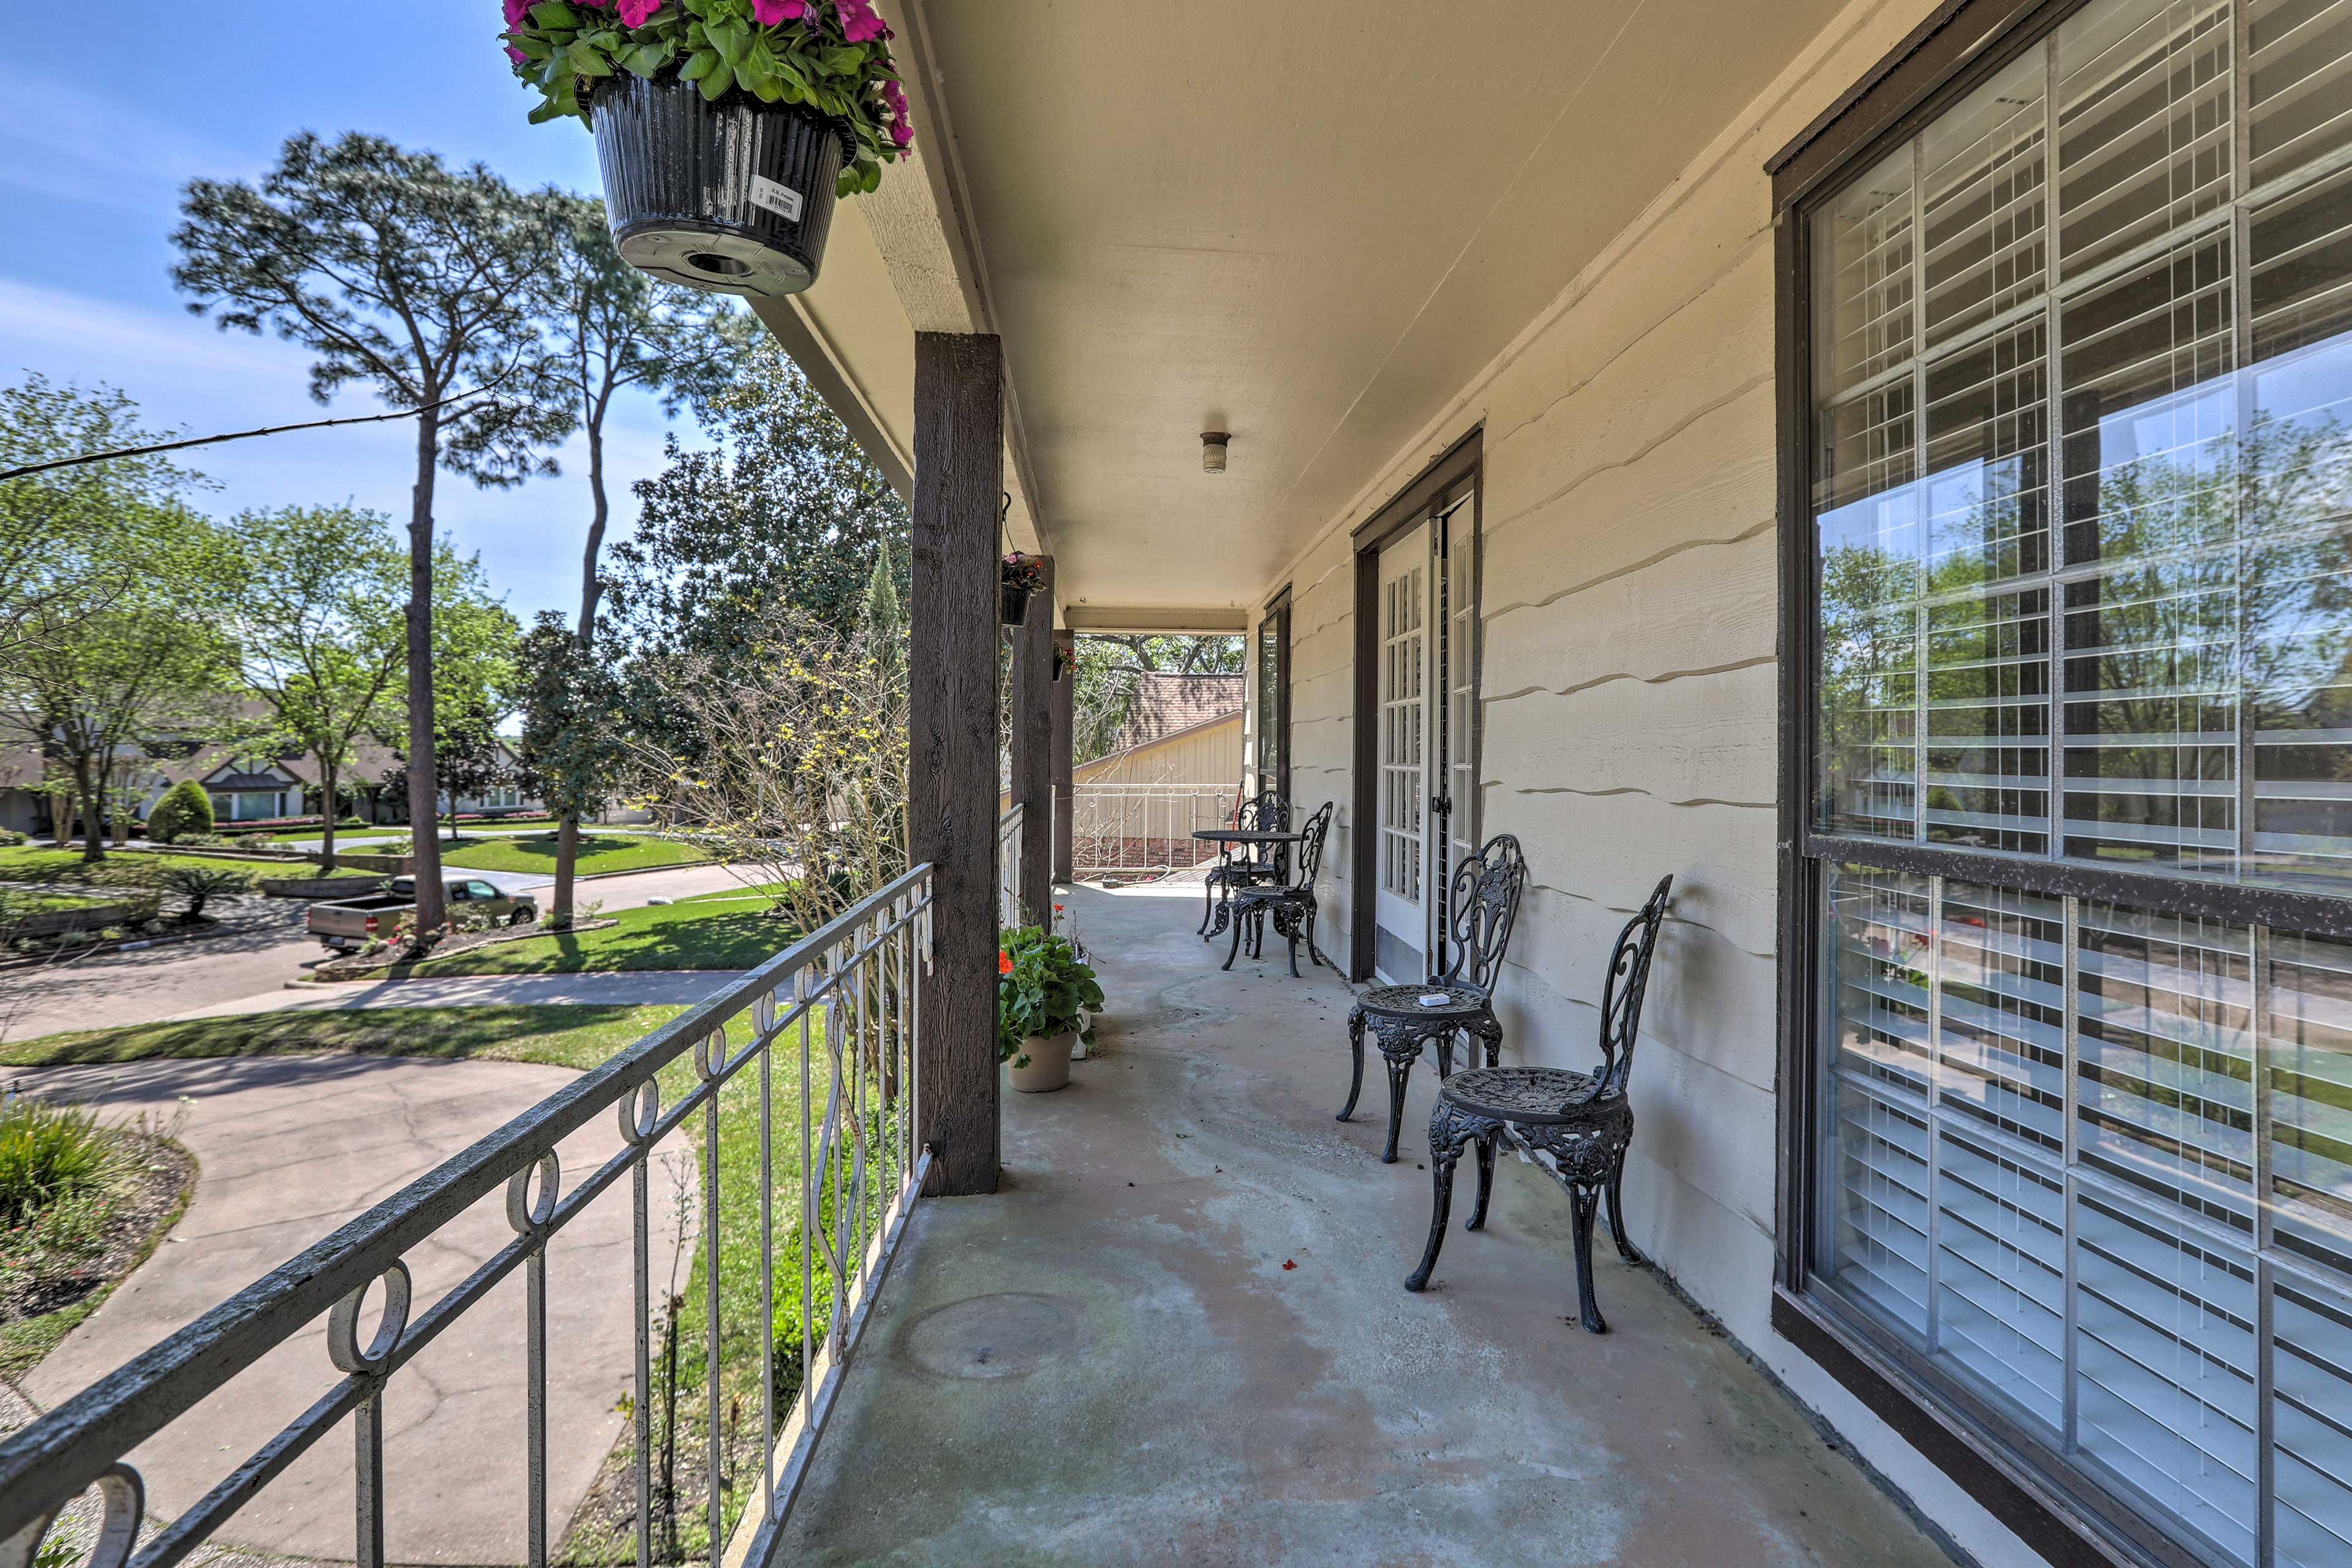 Enjoy a morning cup of coffee on the patio.